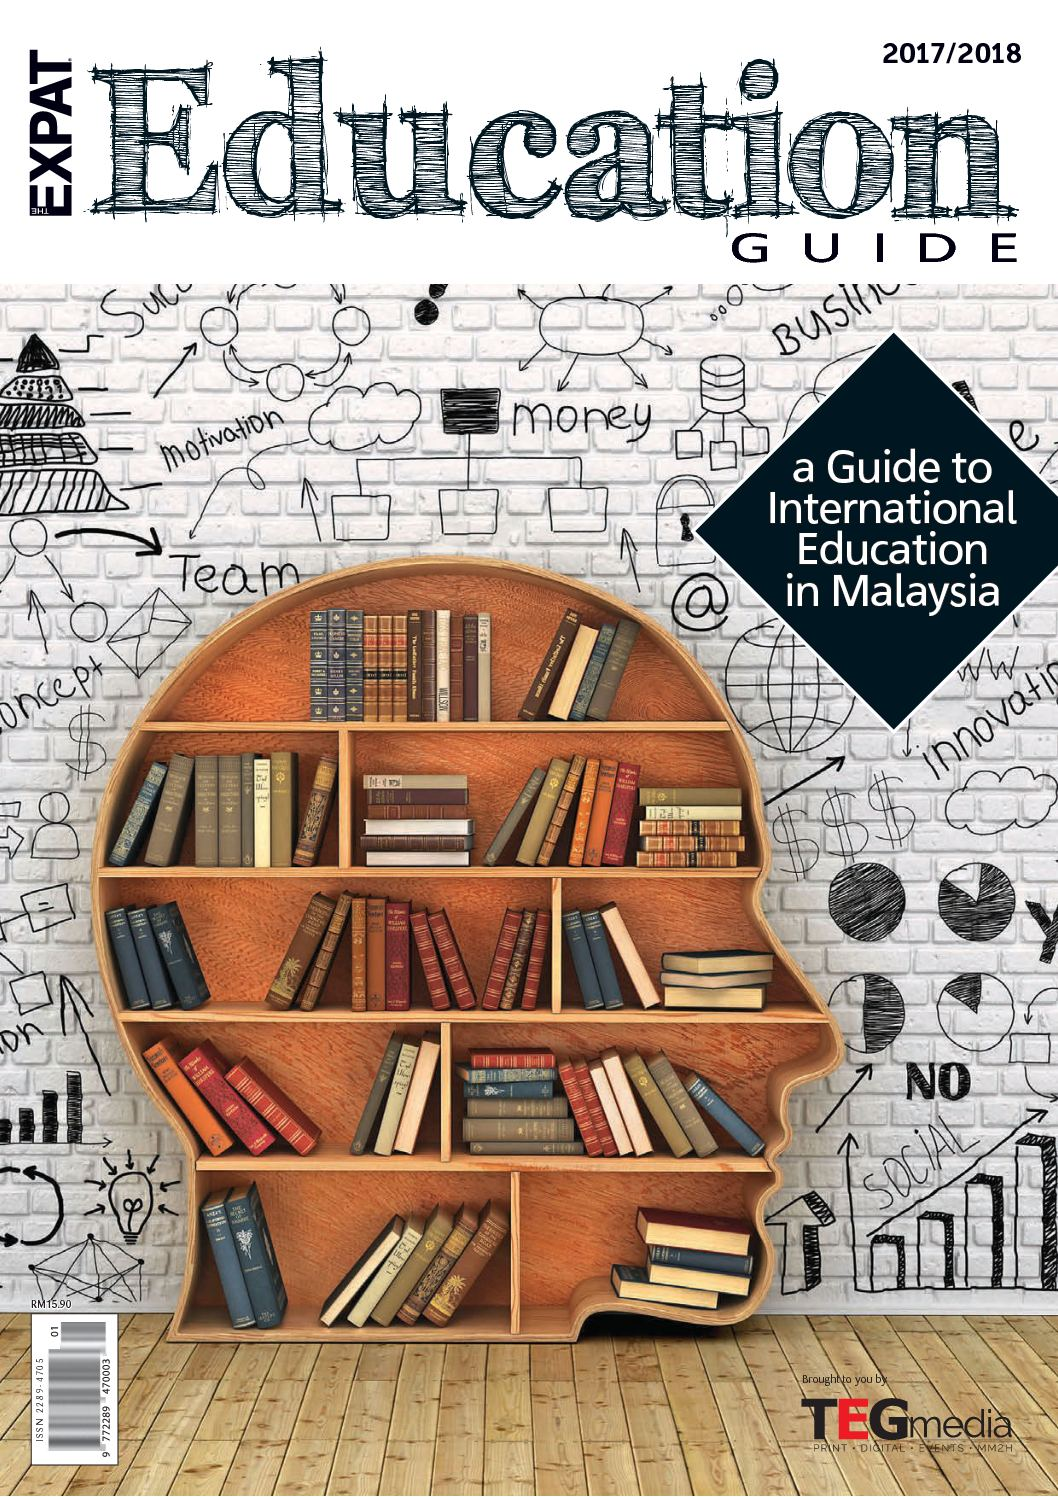 Calaméo - Expat Education Annual Guide 2017/2018